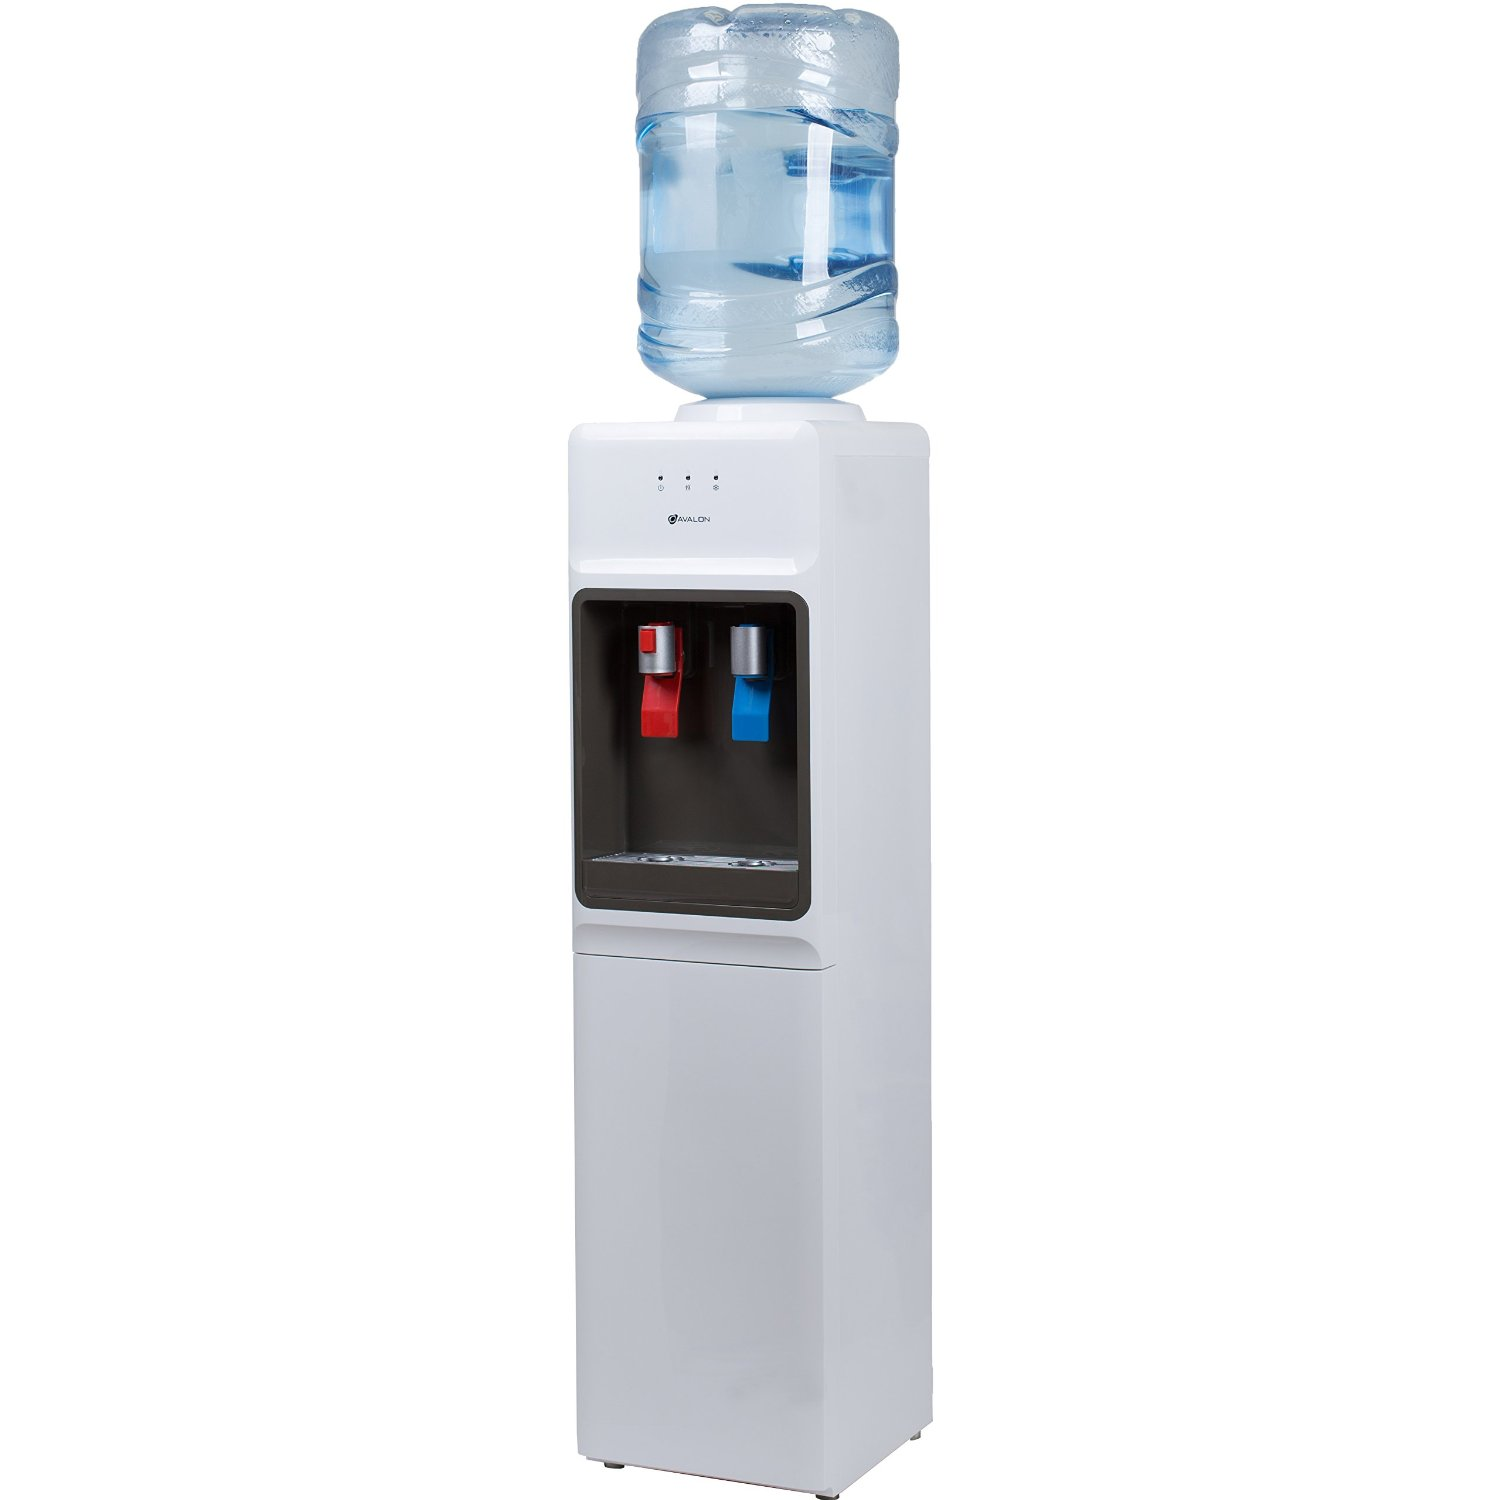 Avalon Hot and Cold Top Loading Water Cooler Dispenser A1WATERCOOLER